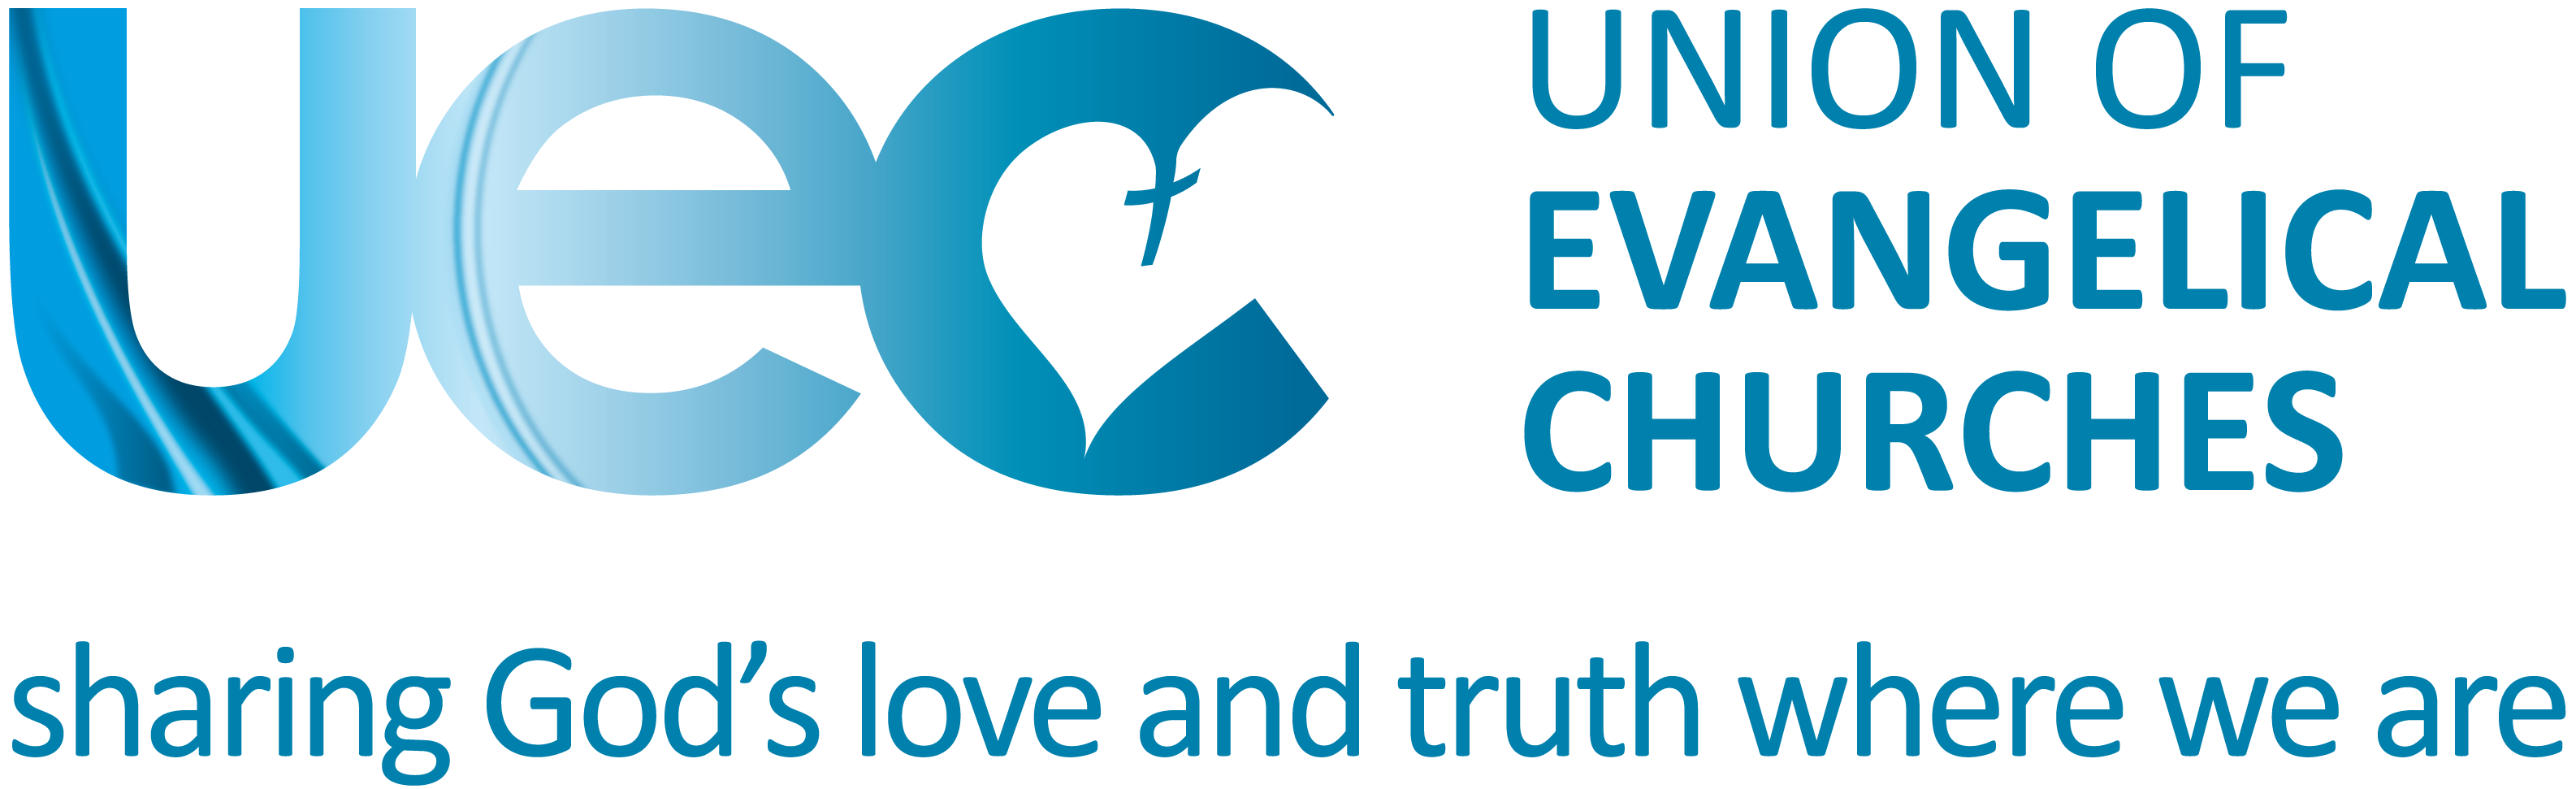 Southend Evangelical Church is part of the Union of Evangelical Churches